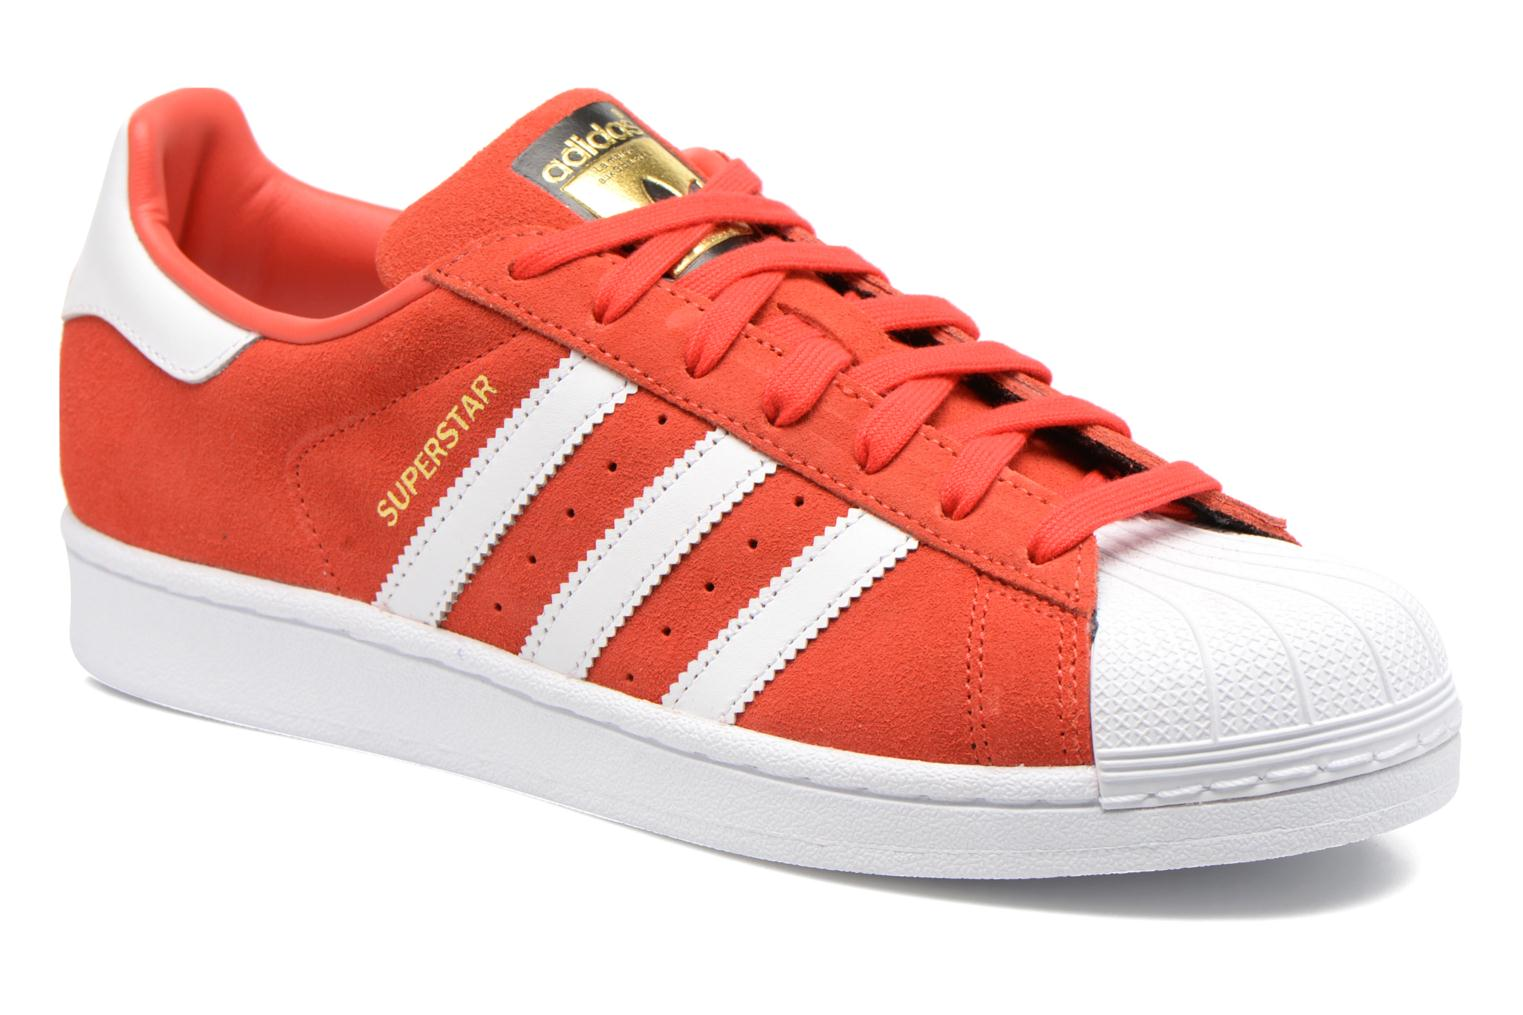 Adidas Originals Superstar rojo